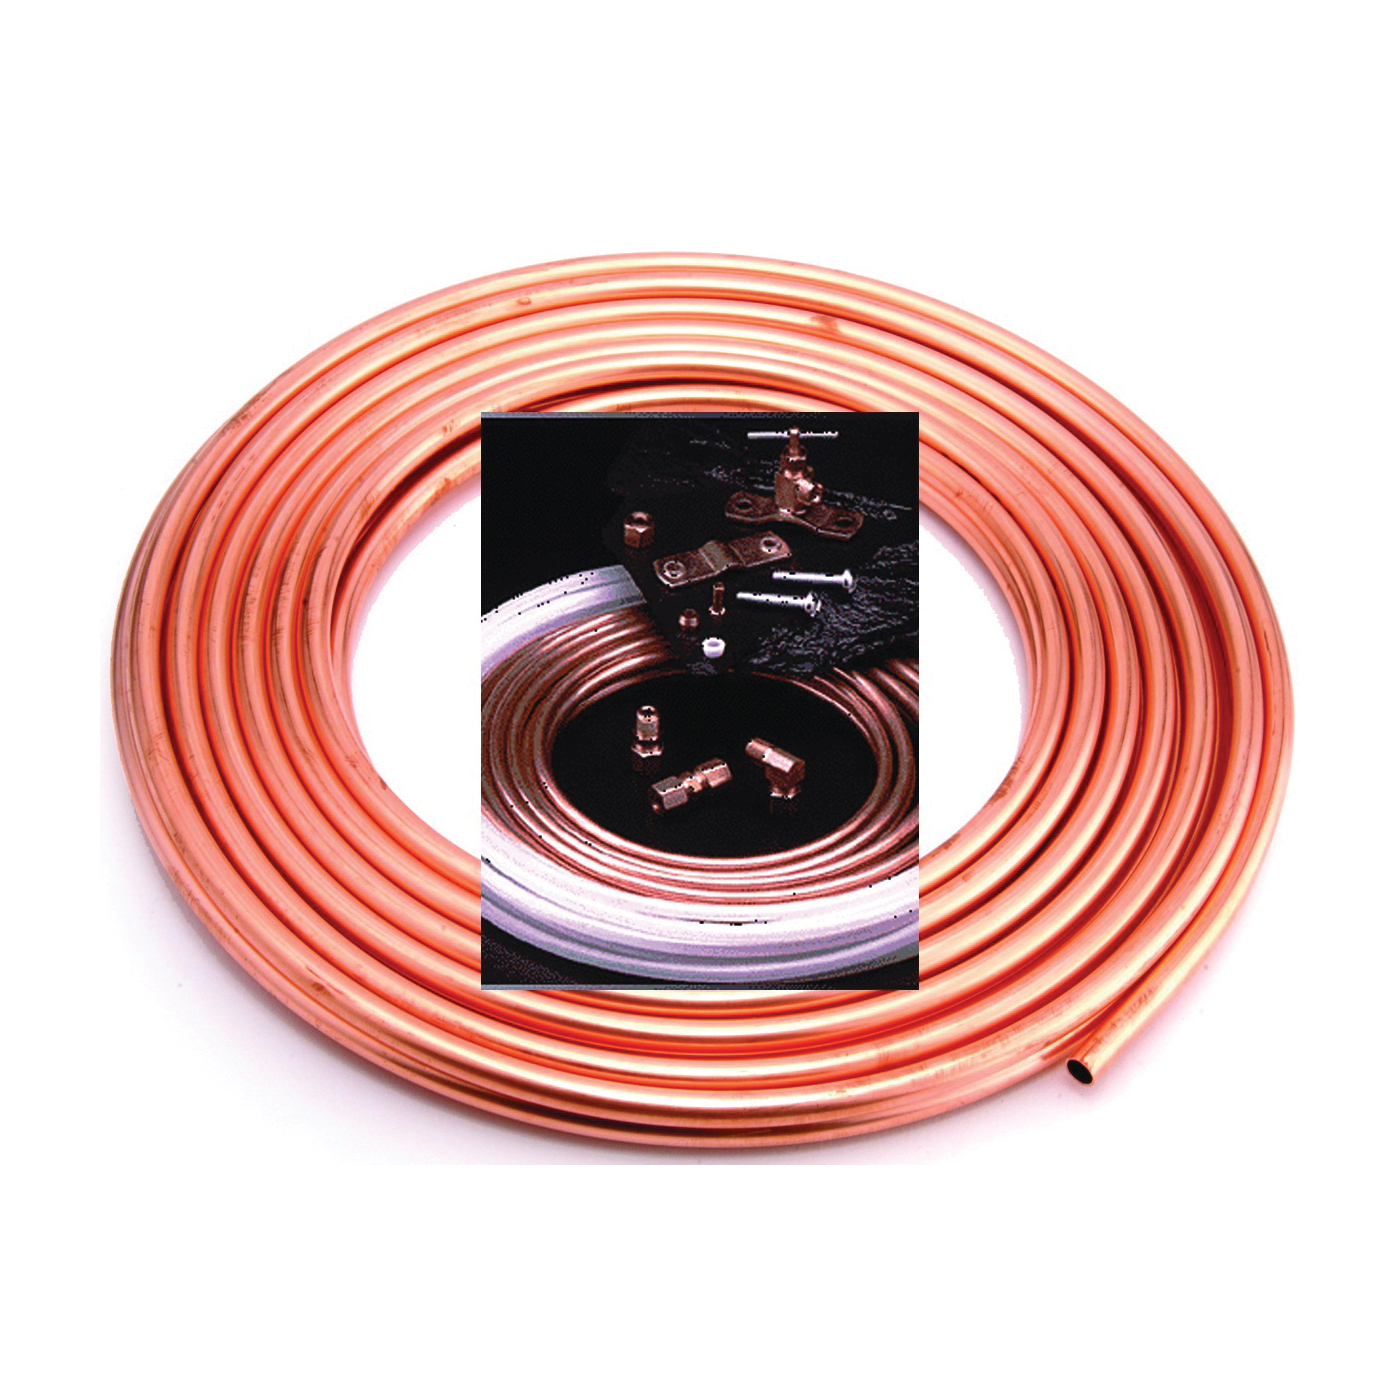 Picture of Anderson Metals 760005 Ice Maker Kit, Copper, For: Evaporative Coolers, Humidifiers, Icemakers